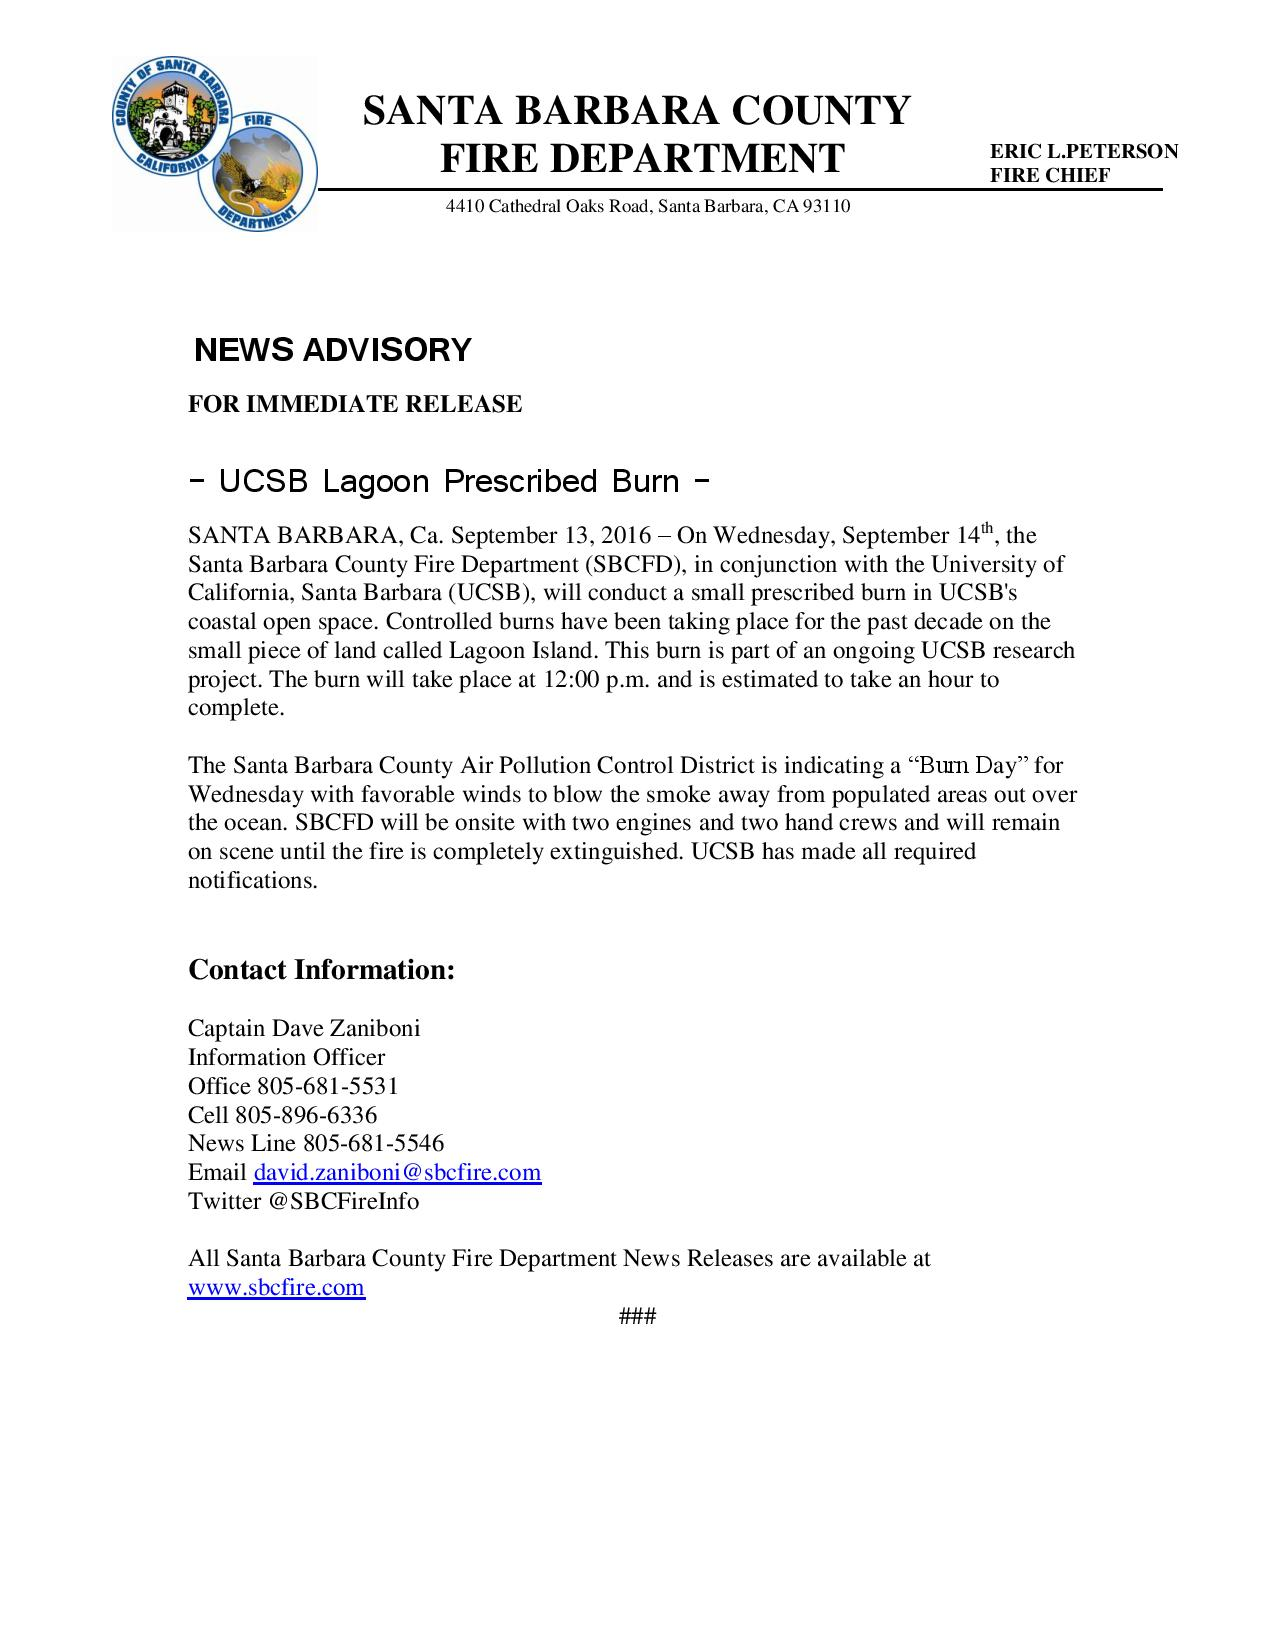 UCSB Lagoon Prescribed Burn